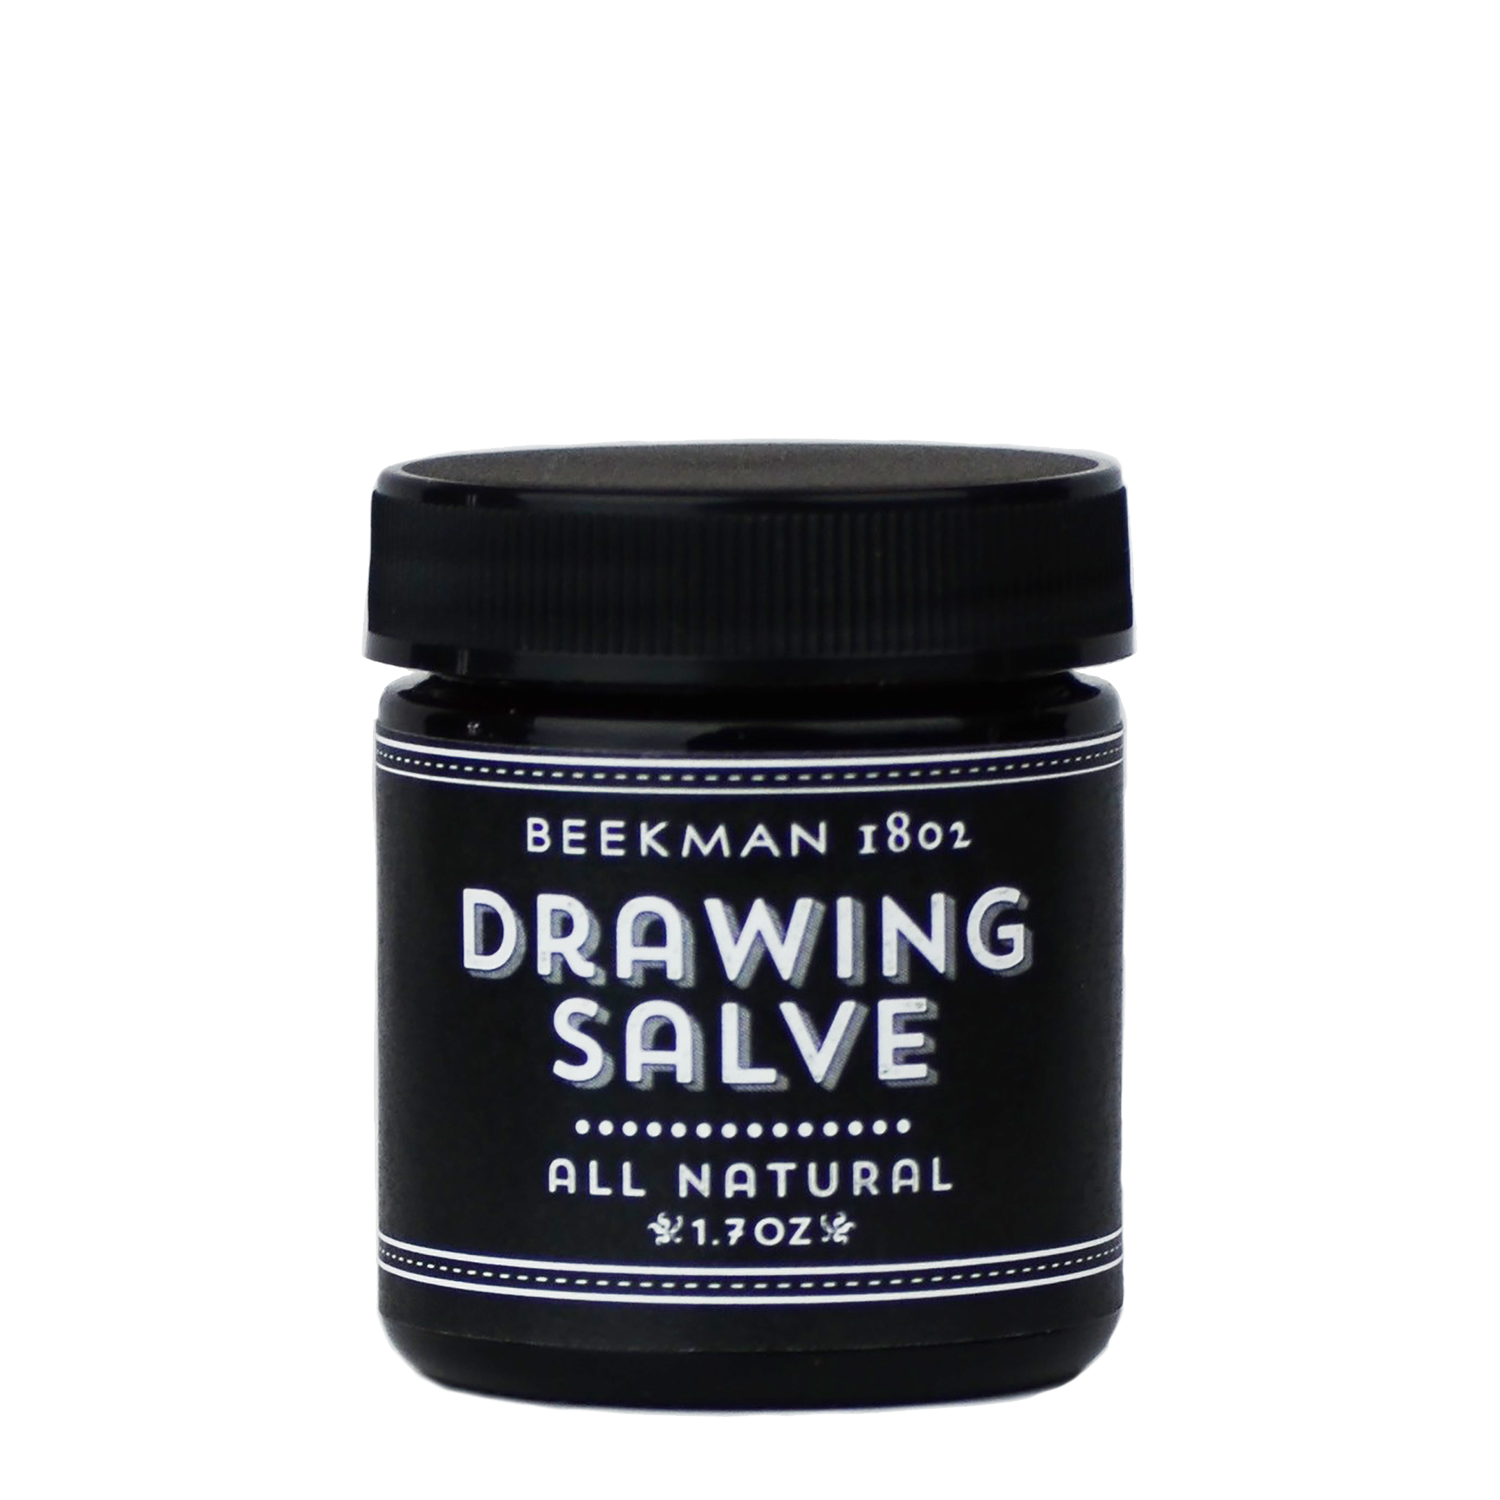 Beekman 1802 Drawing Salve